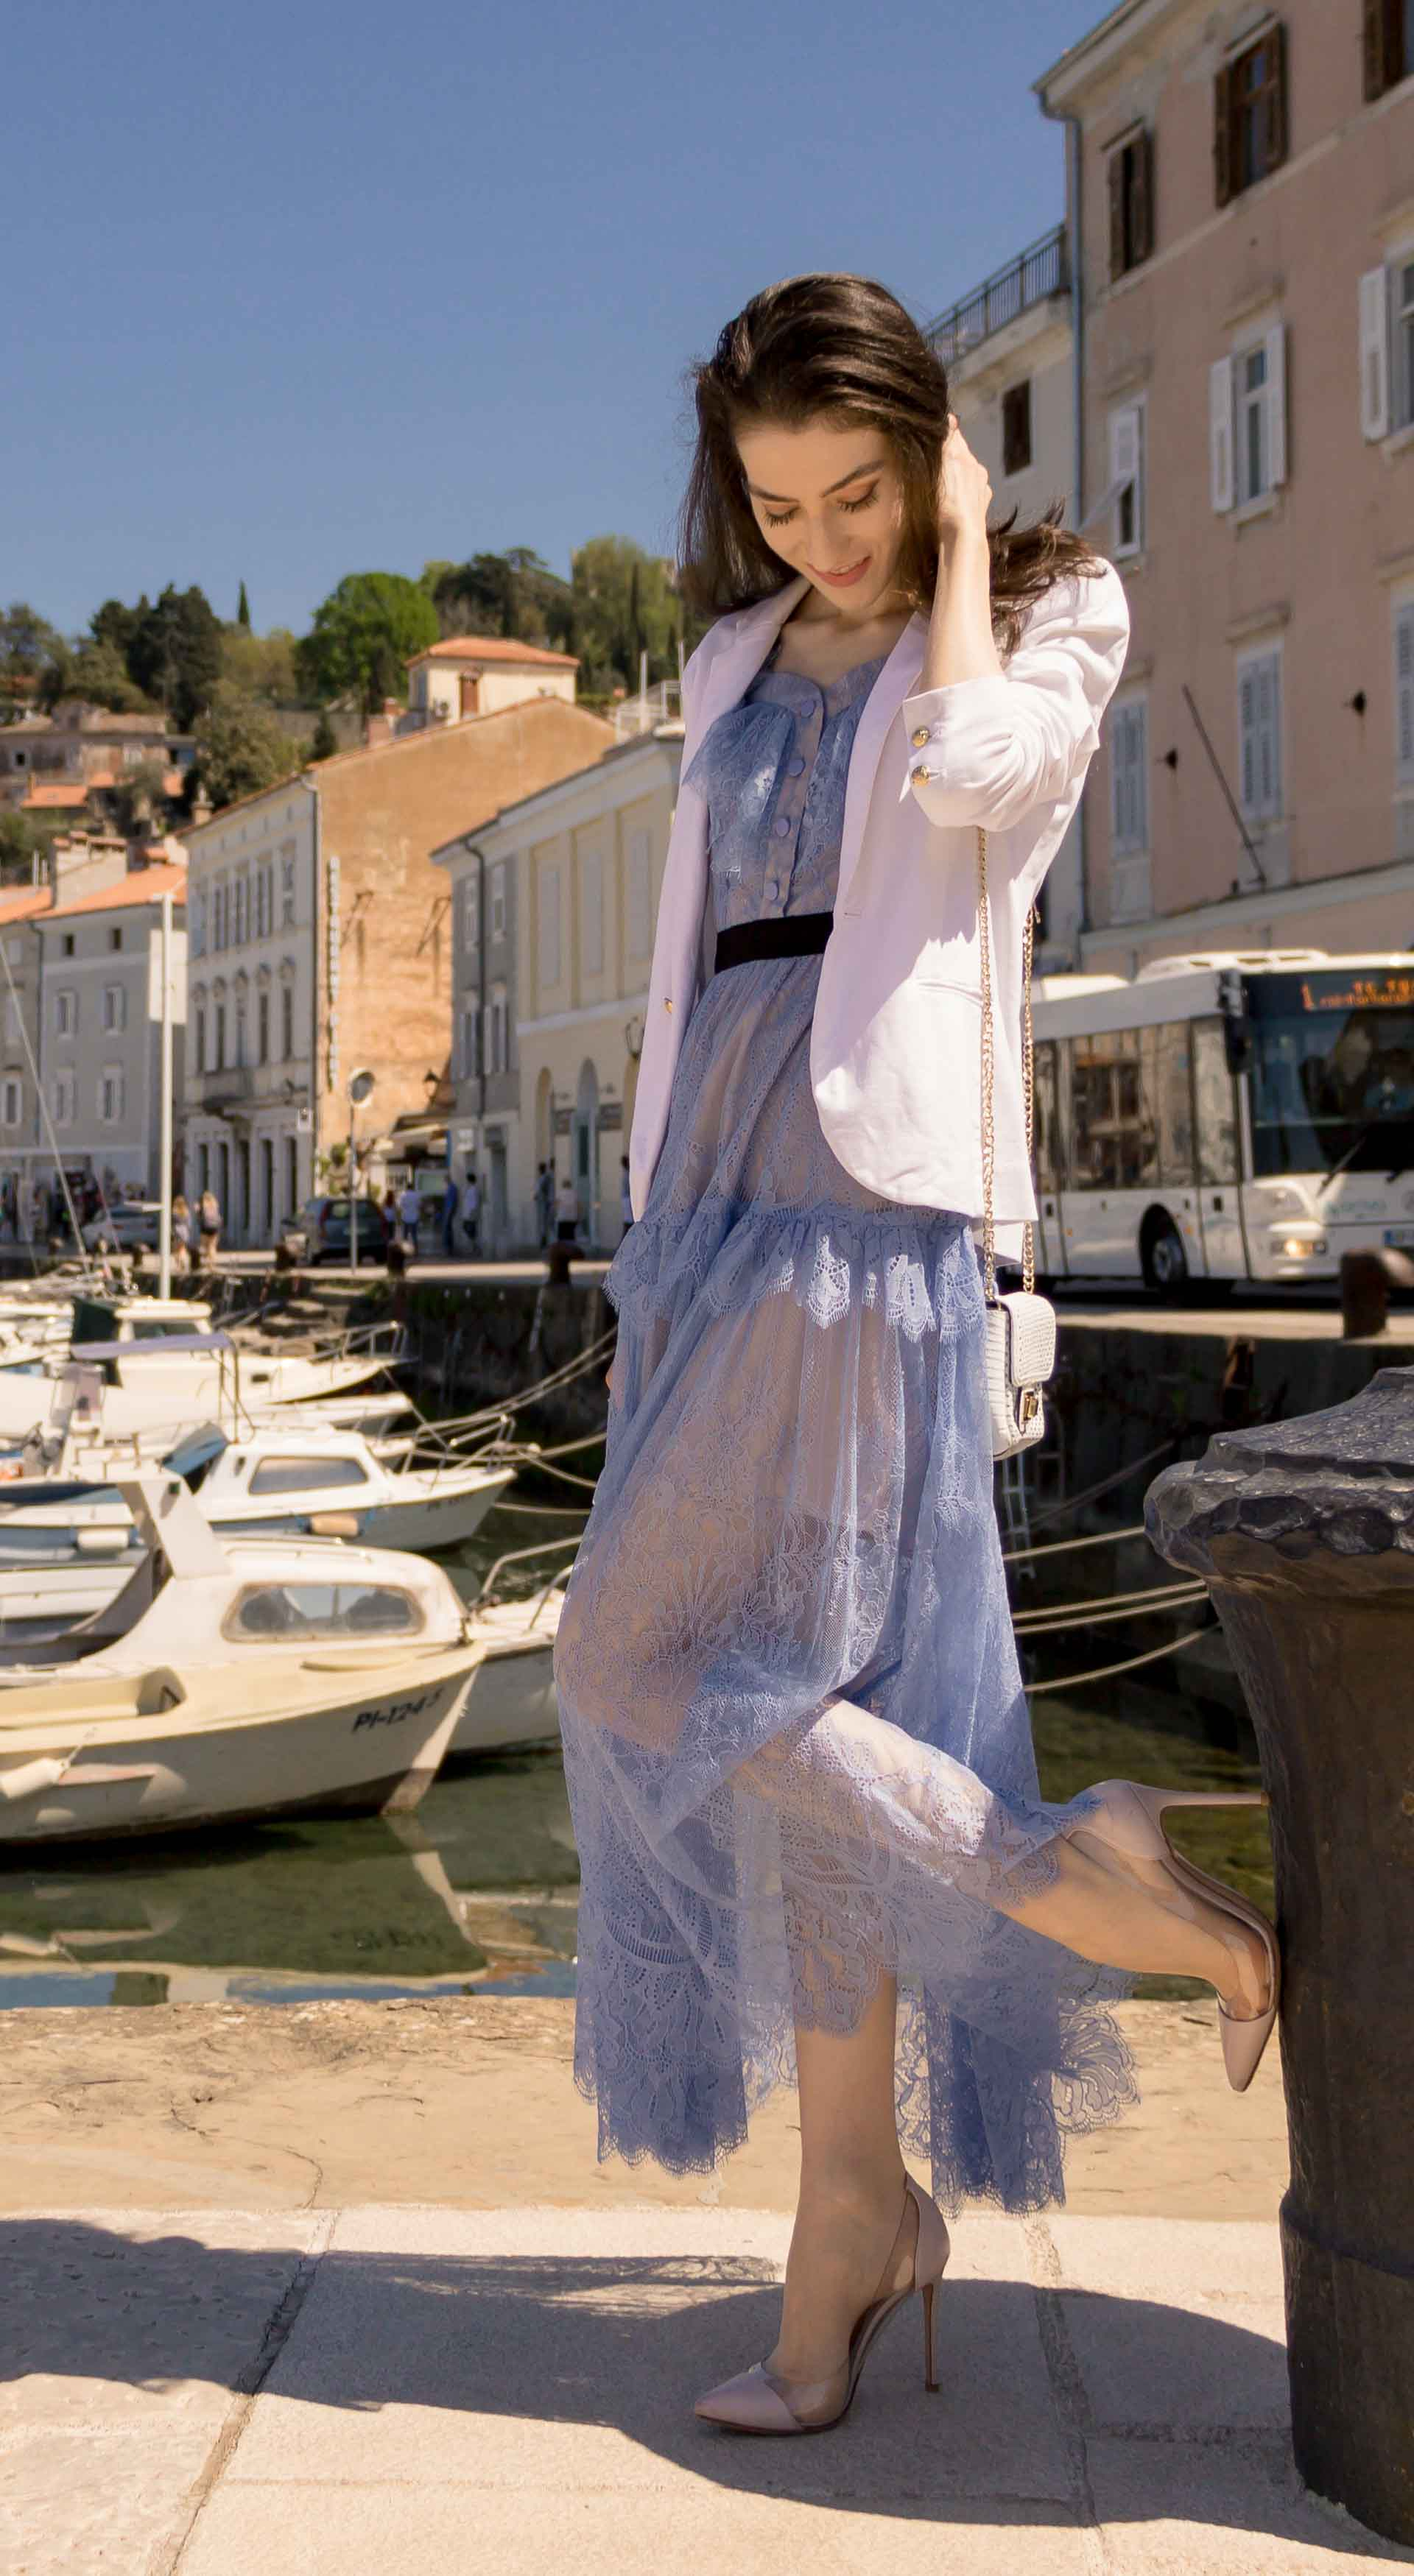 Veronika Lipar Fashion Blogger of Brunette from Wall Street wearing Self-Portrait blue lace dress, white single button blazer, blush Gianvito Rossi plexi pumps, white shoulder bag, Lespecs white cat eye sunglasses while standing in the port in Piran